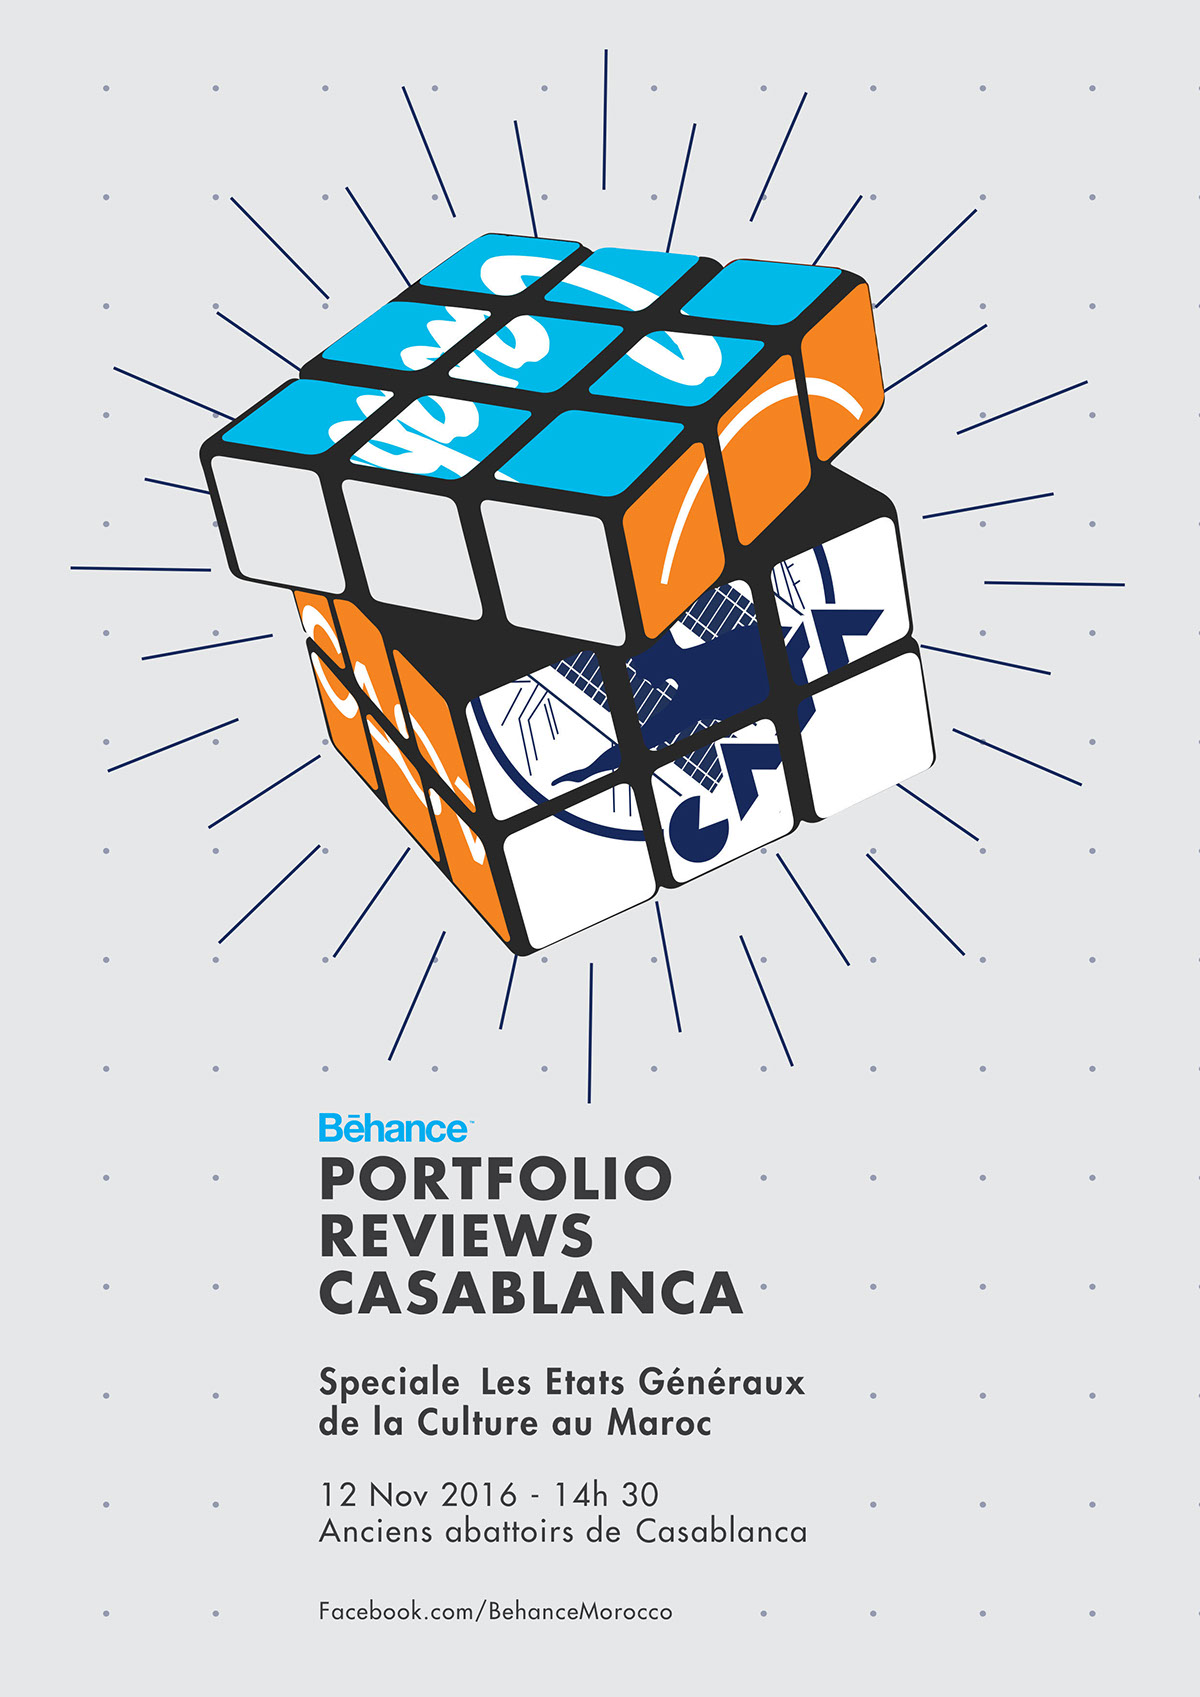 Posters | Be Portfolio Reviews CASABLANCA